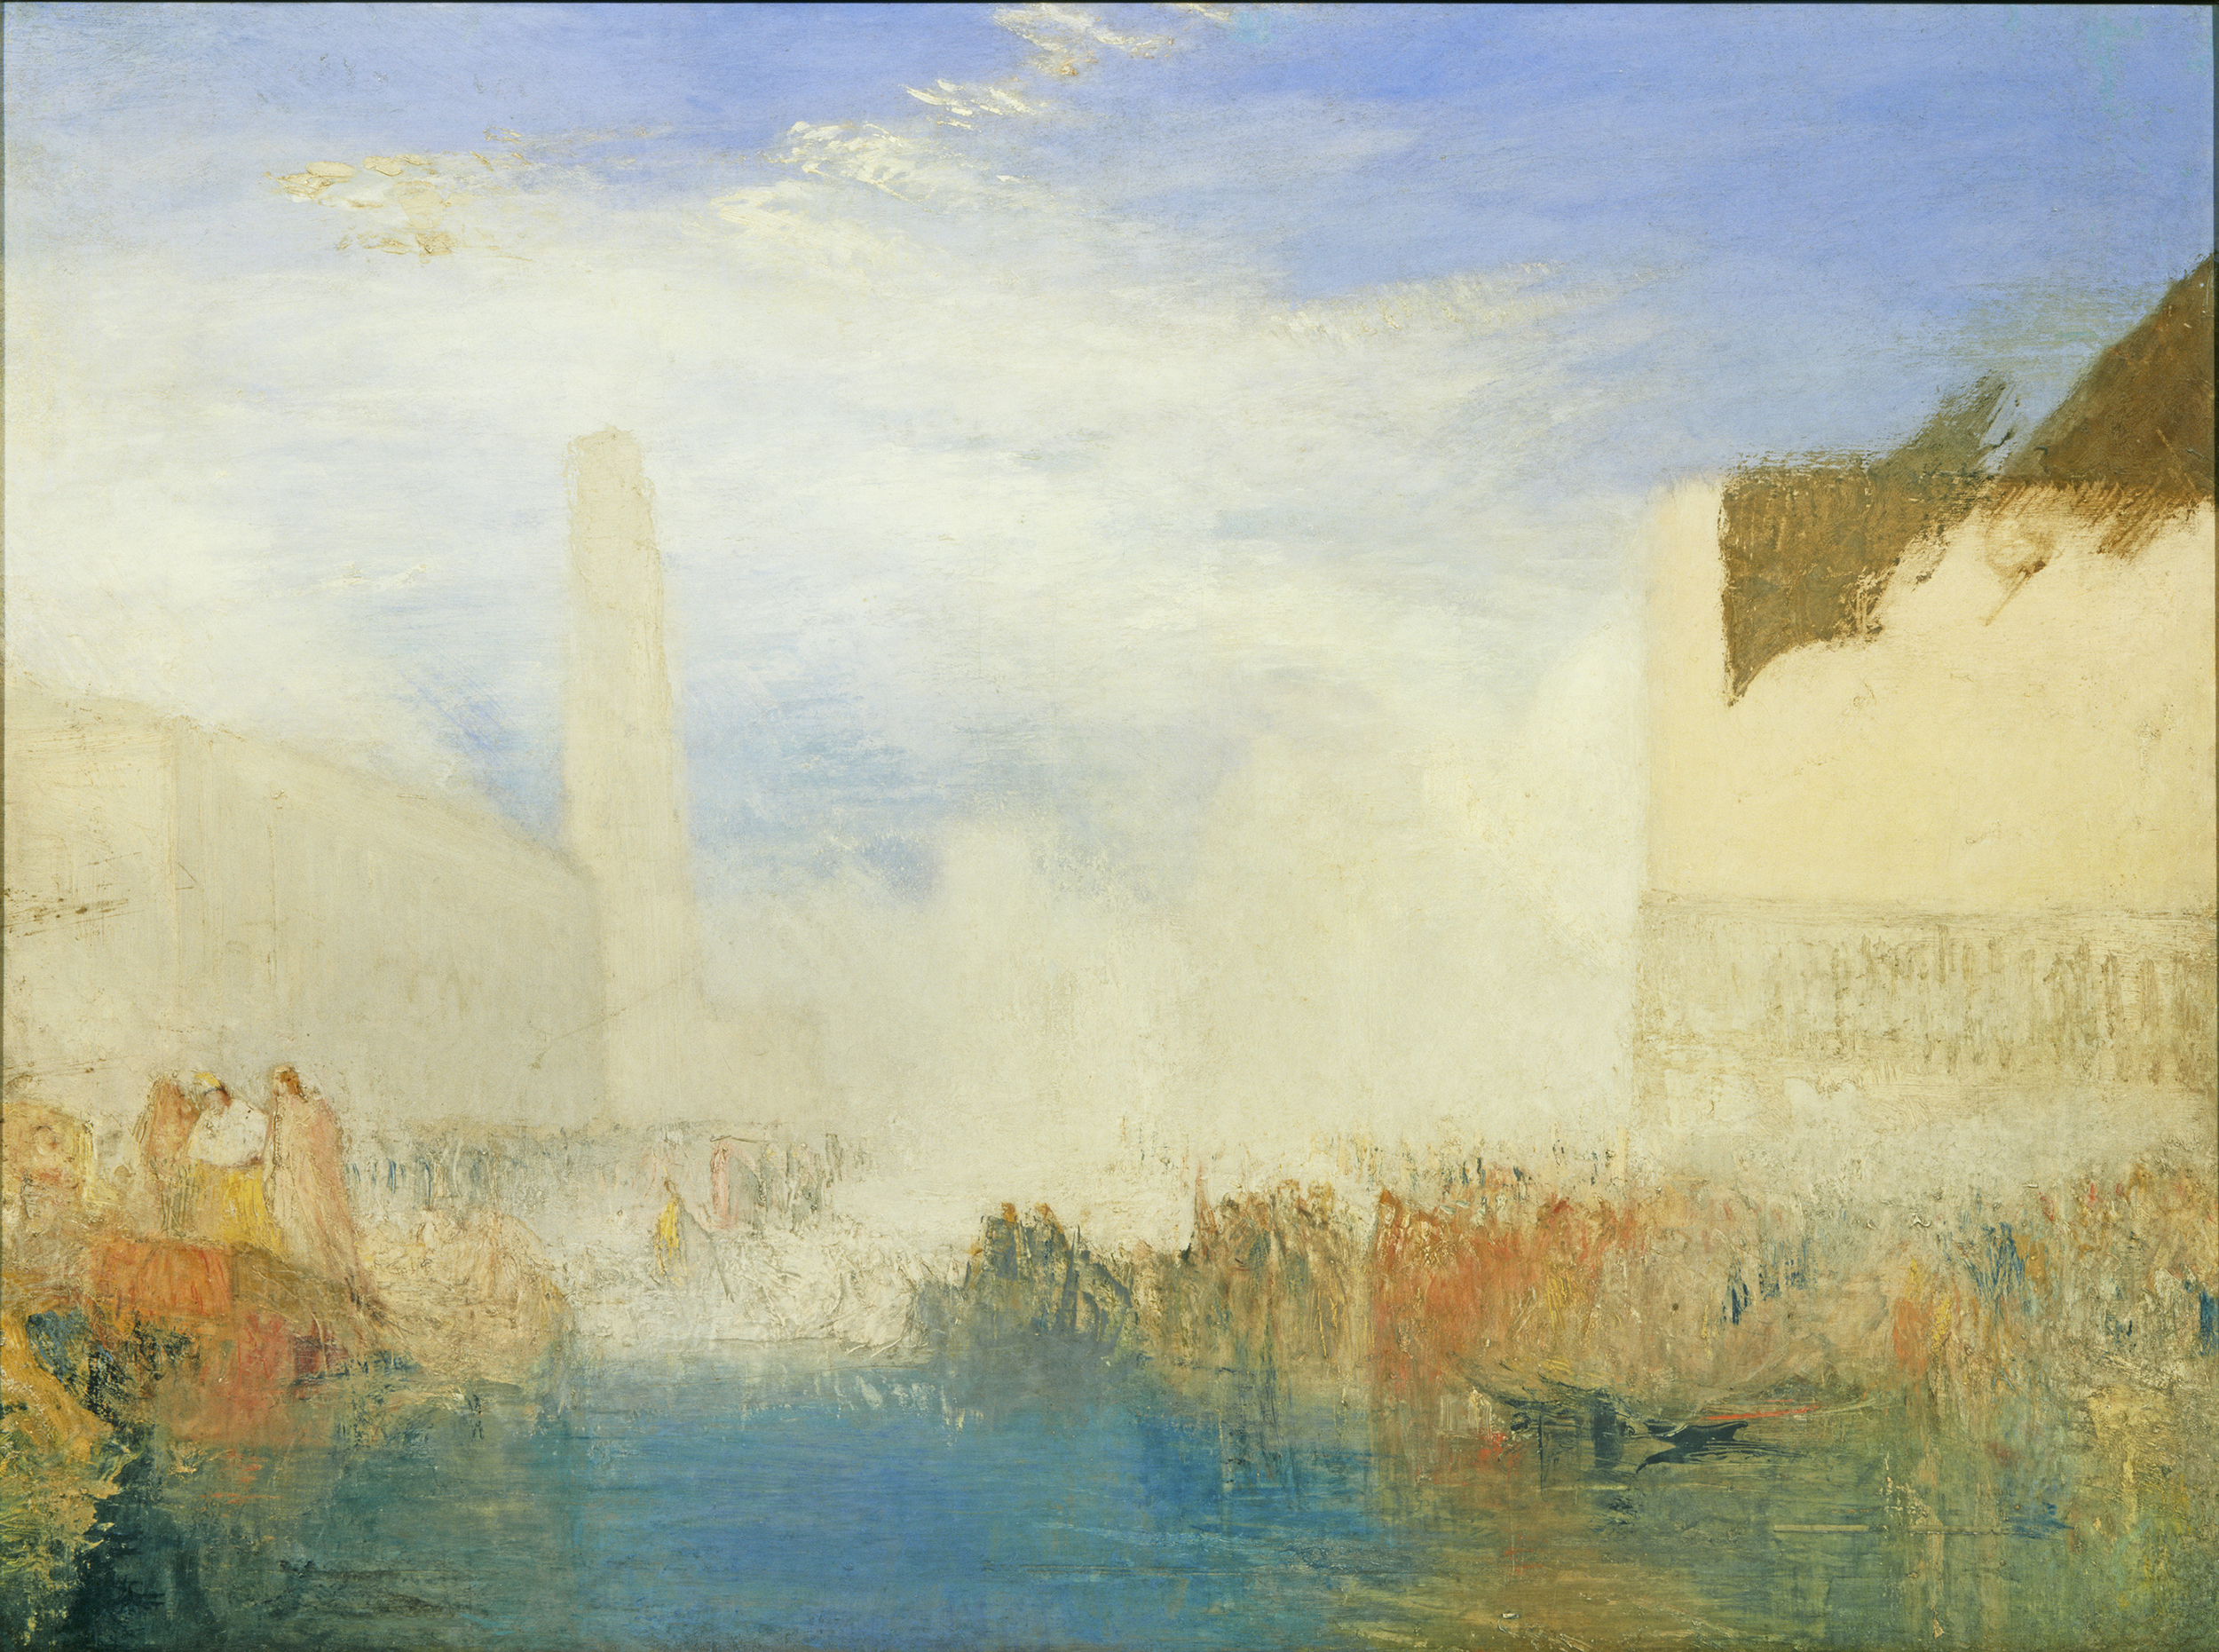 Venice, the Piazzetta with the Ceremony of the Doge Marrying the Sea